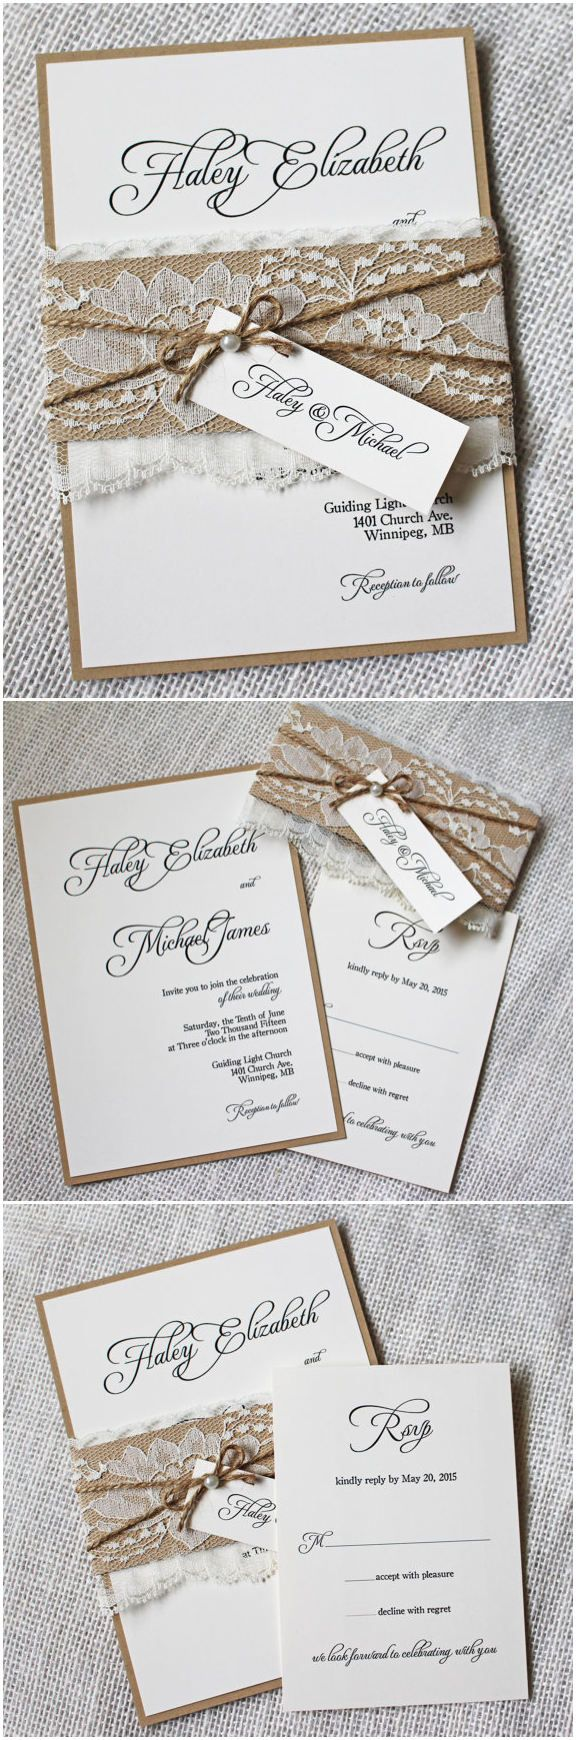 Top 10 Rustic Wedding Invitations To Wow Your Guests Svadba